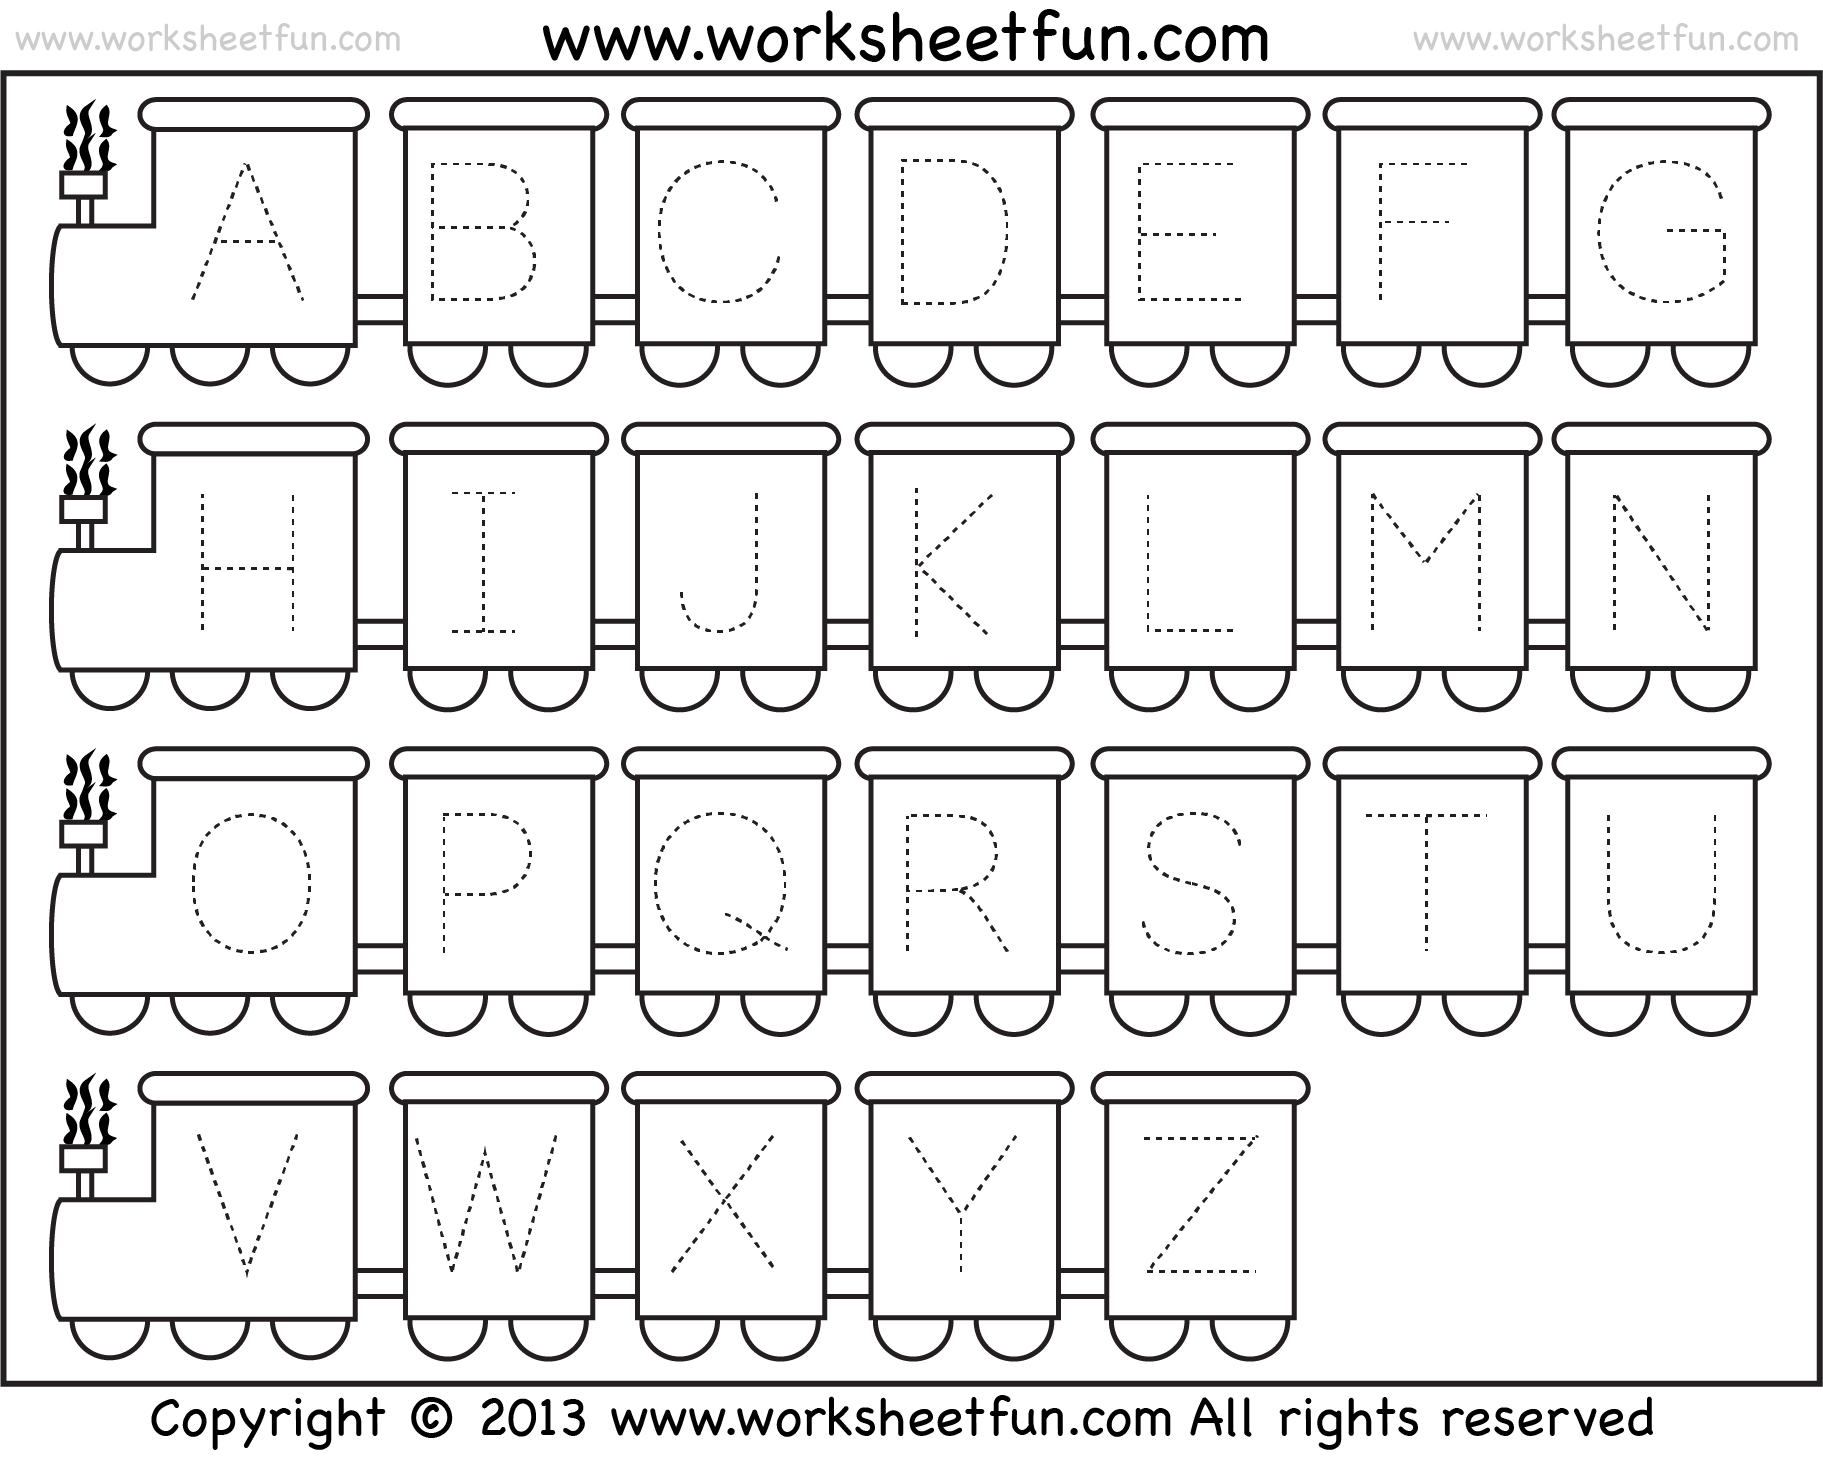 Printables Abc Tracing Worksheets For Kindergarten letter tracing worksheet train theme free printable worksheets tracing